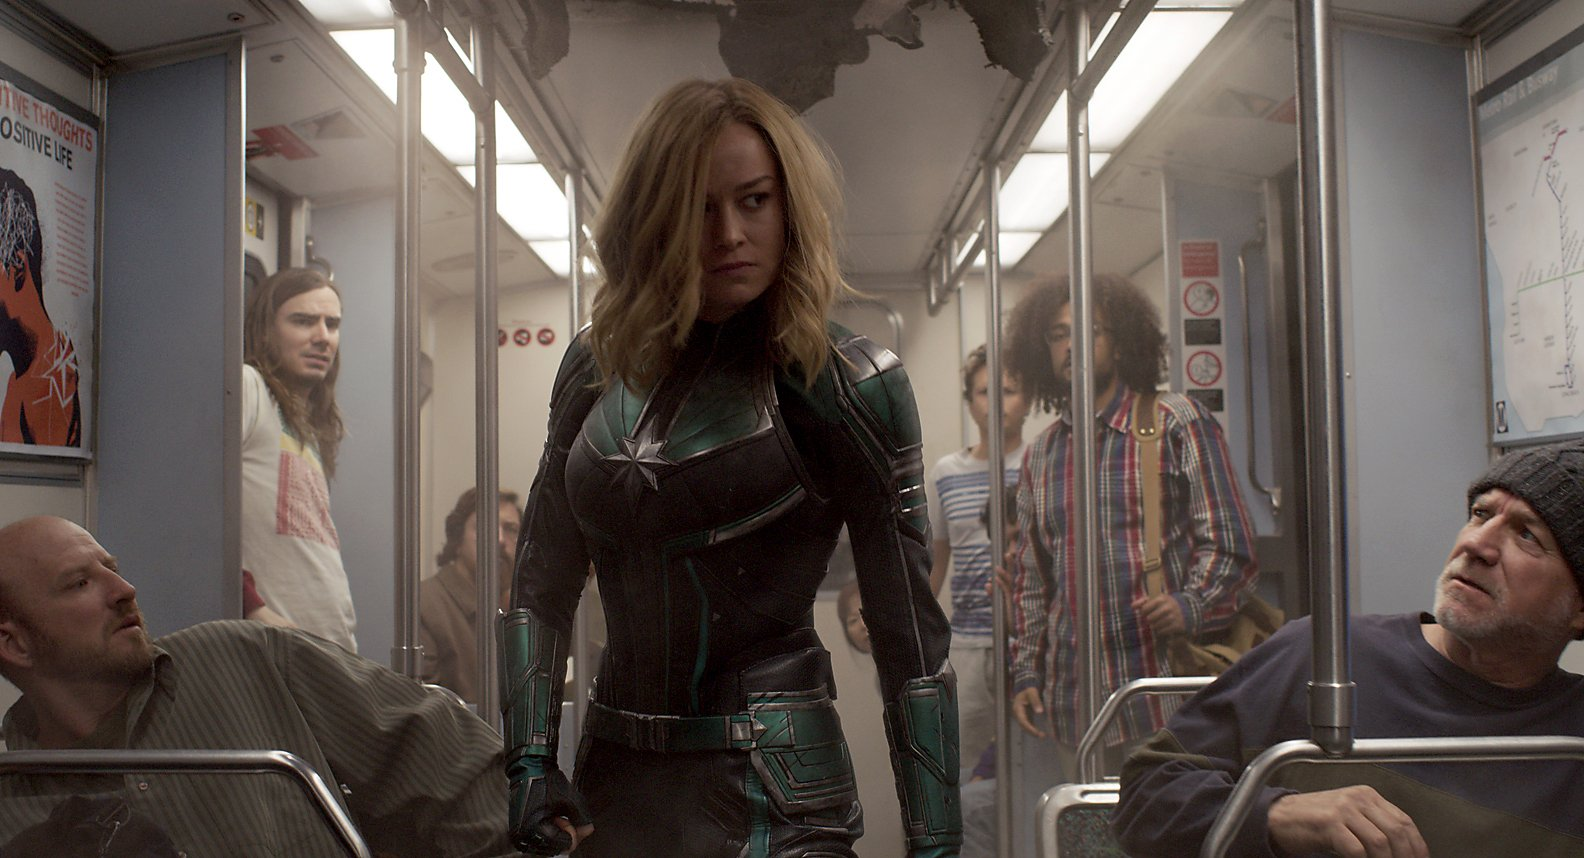 Hesitating to go see 'Captain Marvel'? Then you must be a bad feminist.